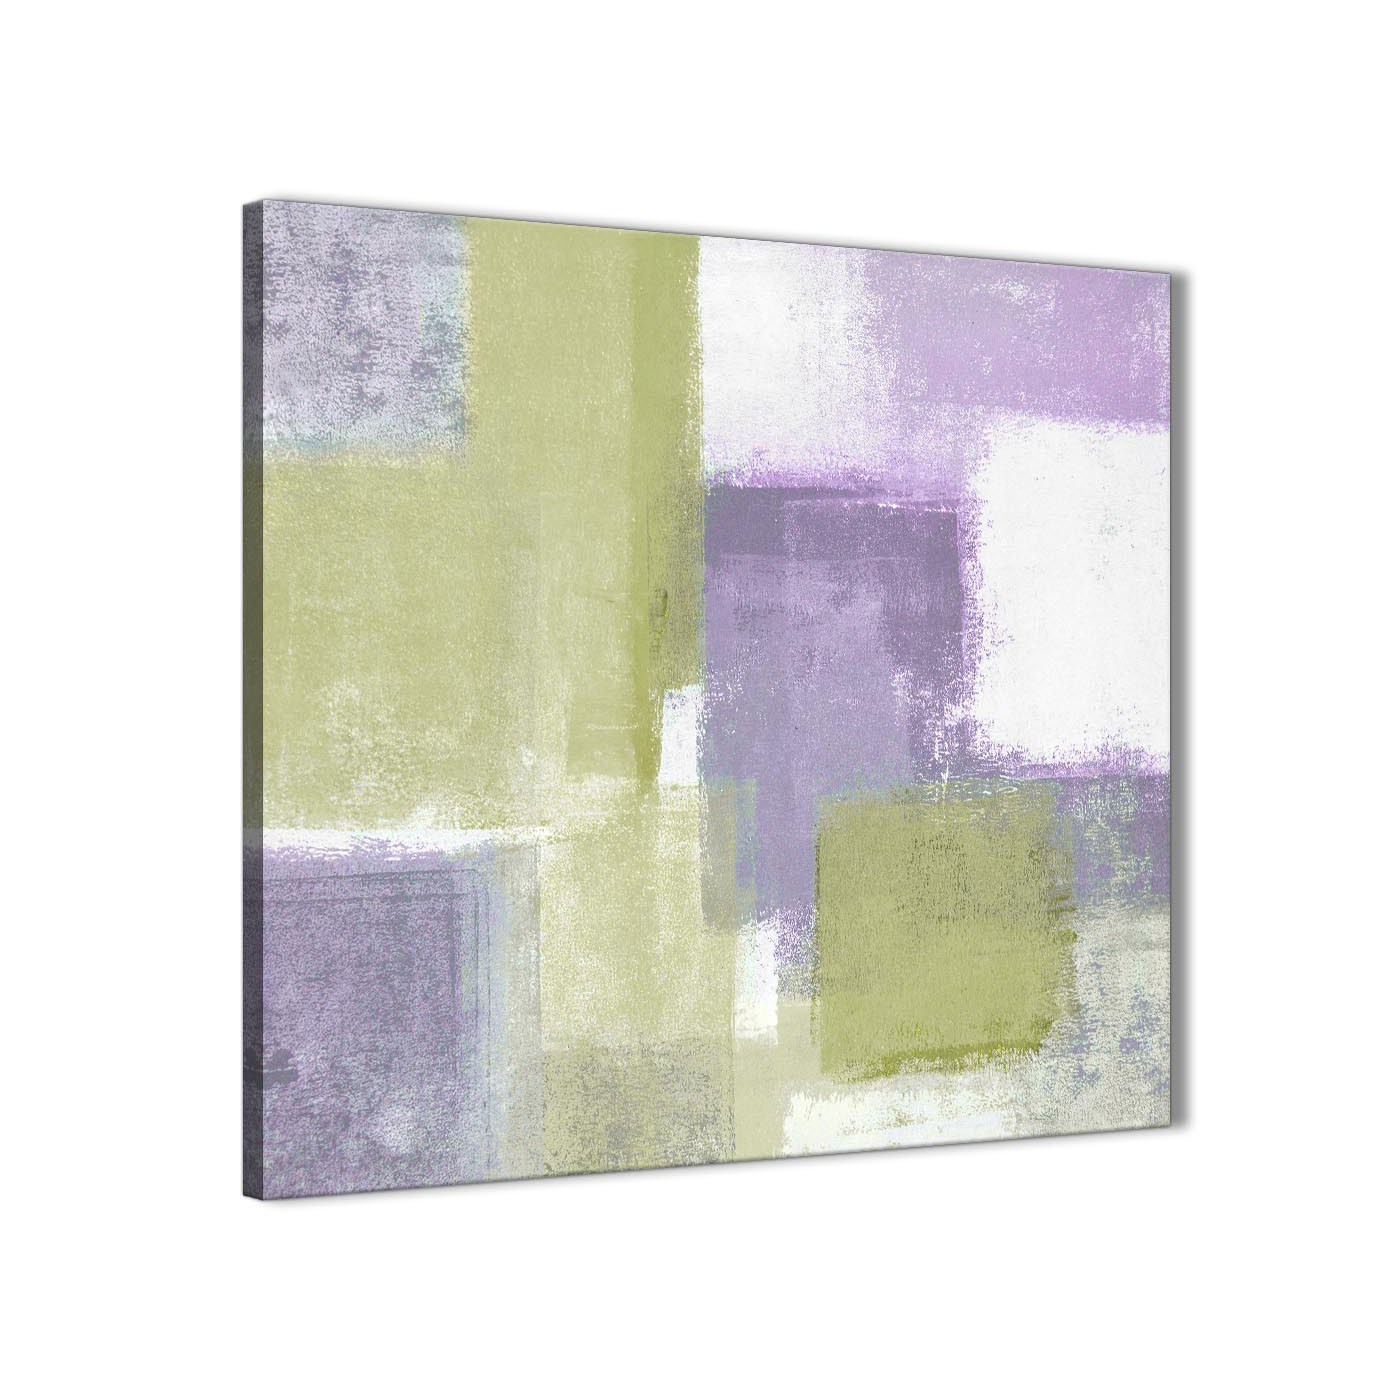 lime green purple abstract painting canvas wall art print modern 79cm square 1s364l. Black Bedroom Furniture Sets. Home Design Ideas